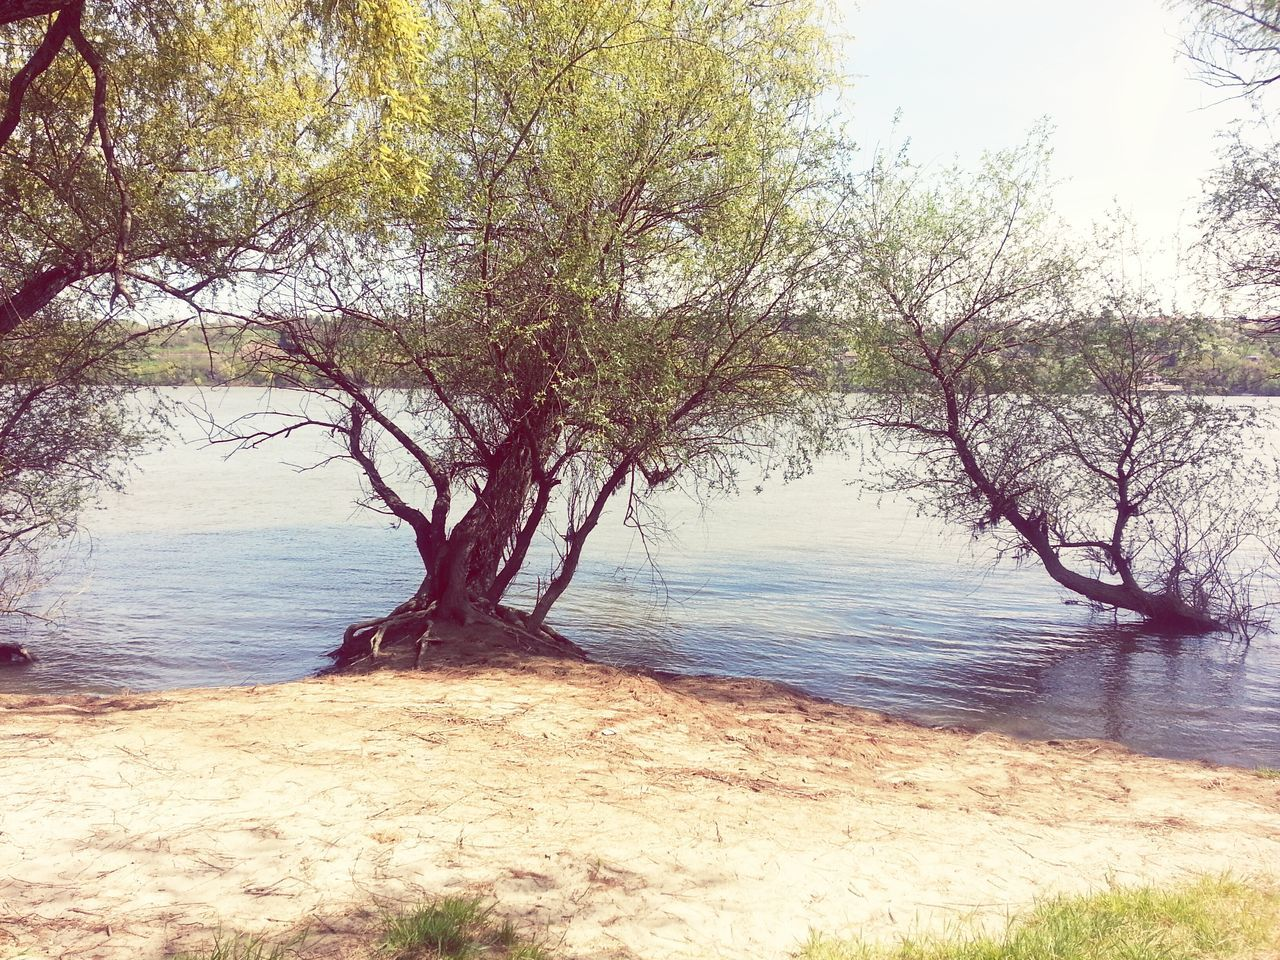 tree, water, nature, beauty in nature, tranquility, scenics, tranquil scene, lake, no people, growth, outdoors, branch, day, sky